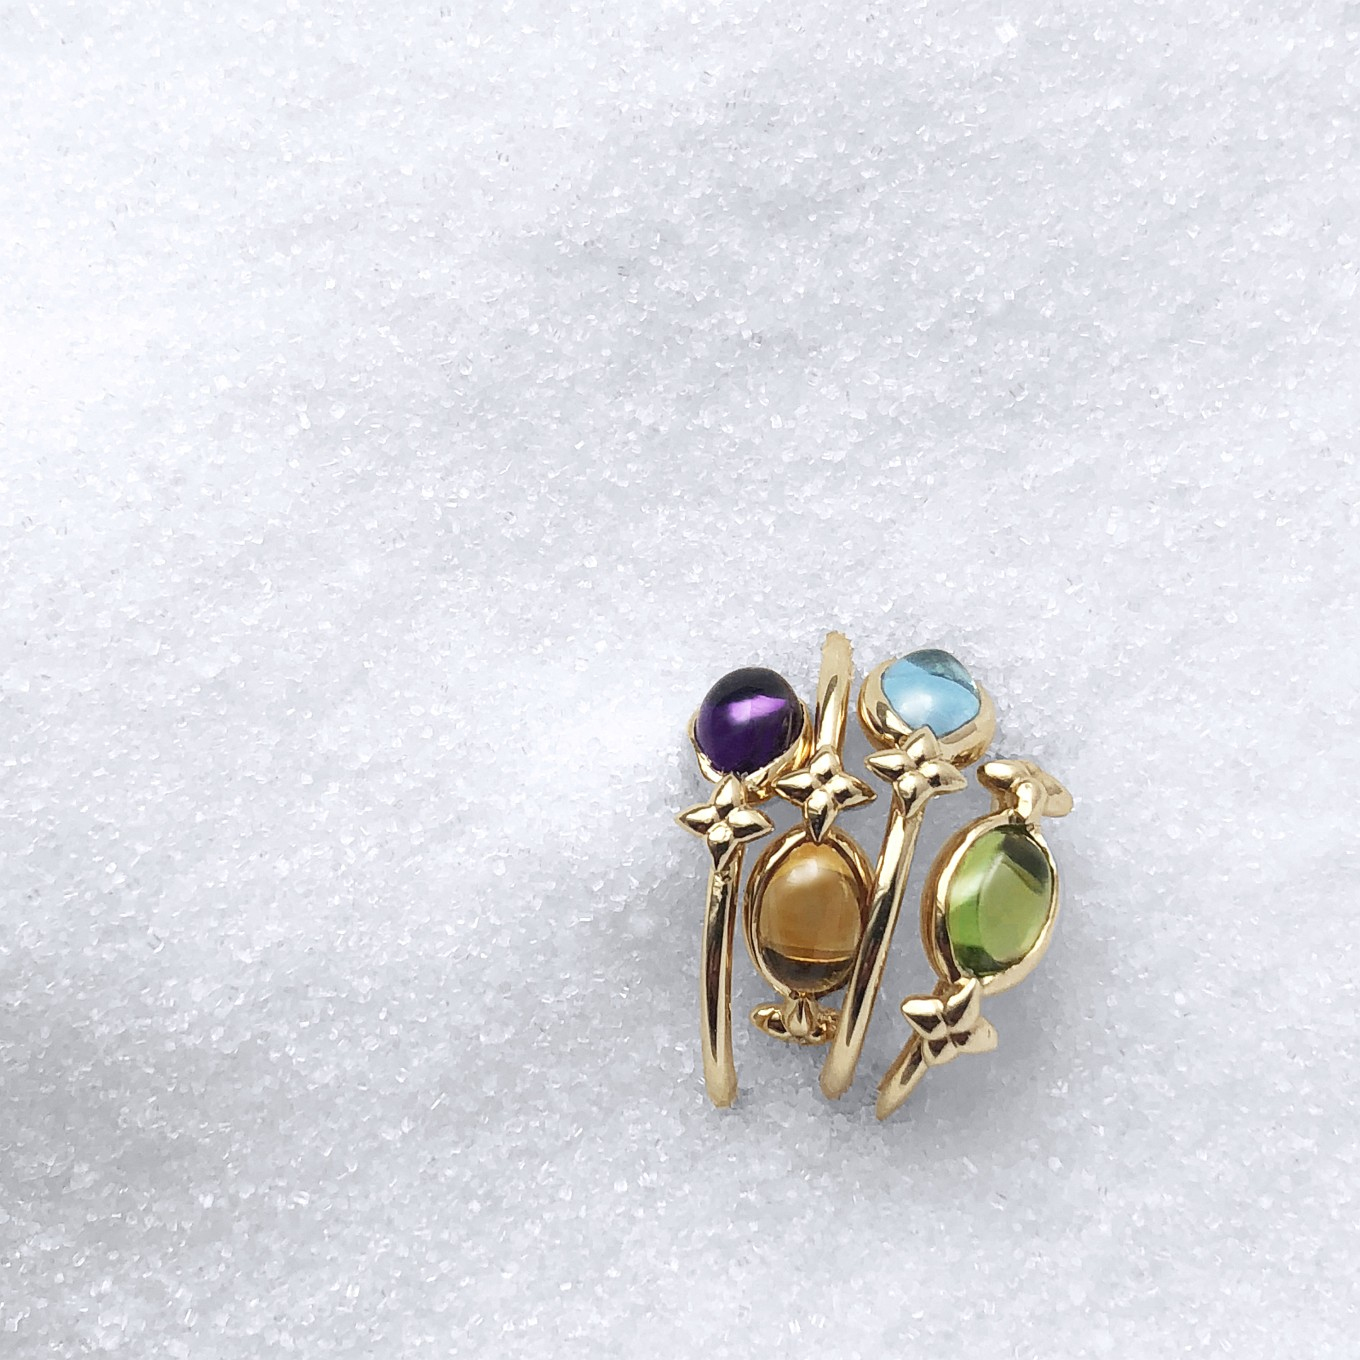 BELLA CABOCHON GEMSTONE RINGS IN YELLOW GOLD